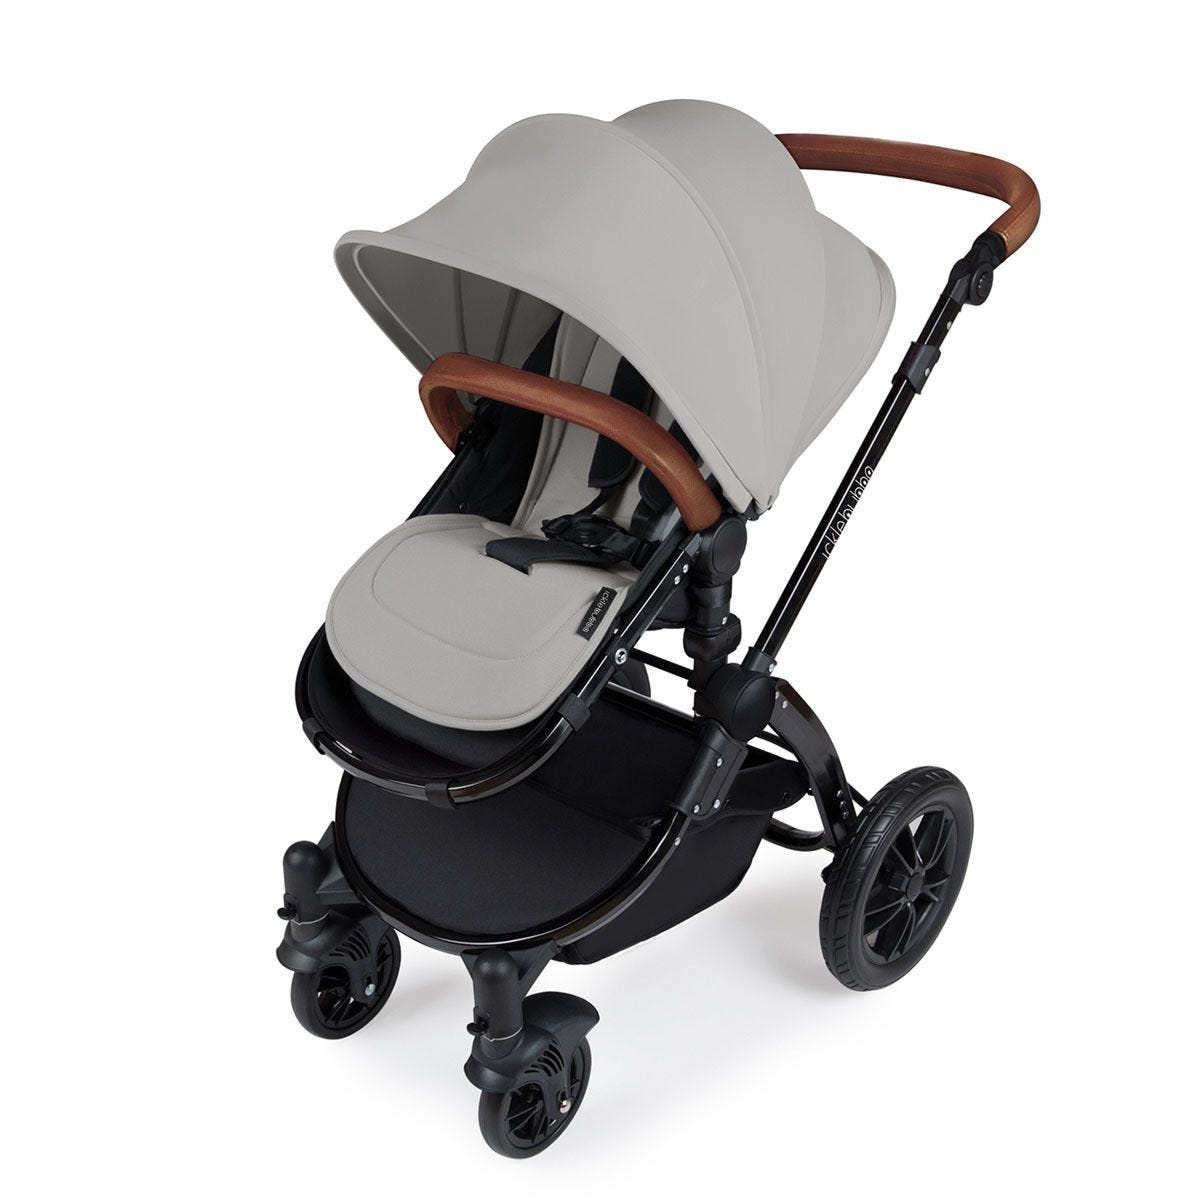 Ickle Bubba Stomp V3 i-Size Travel System with Isofix Base - Silver on Black with Tan Handles